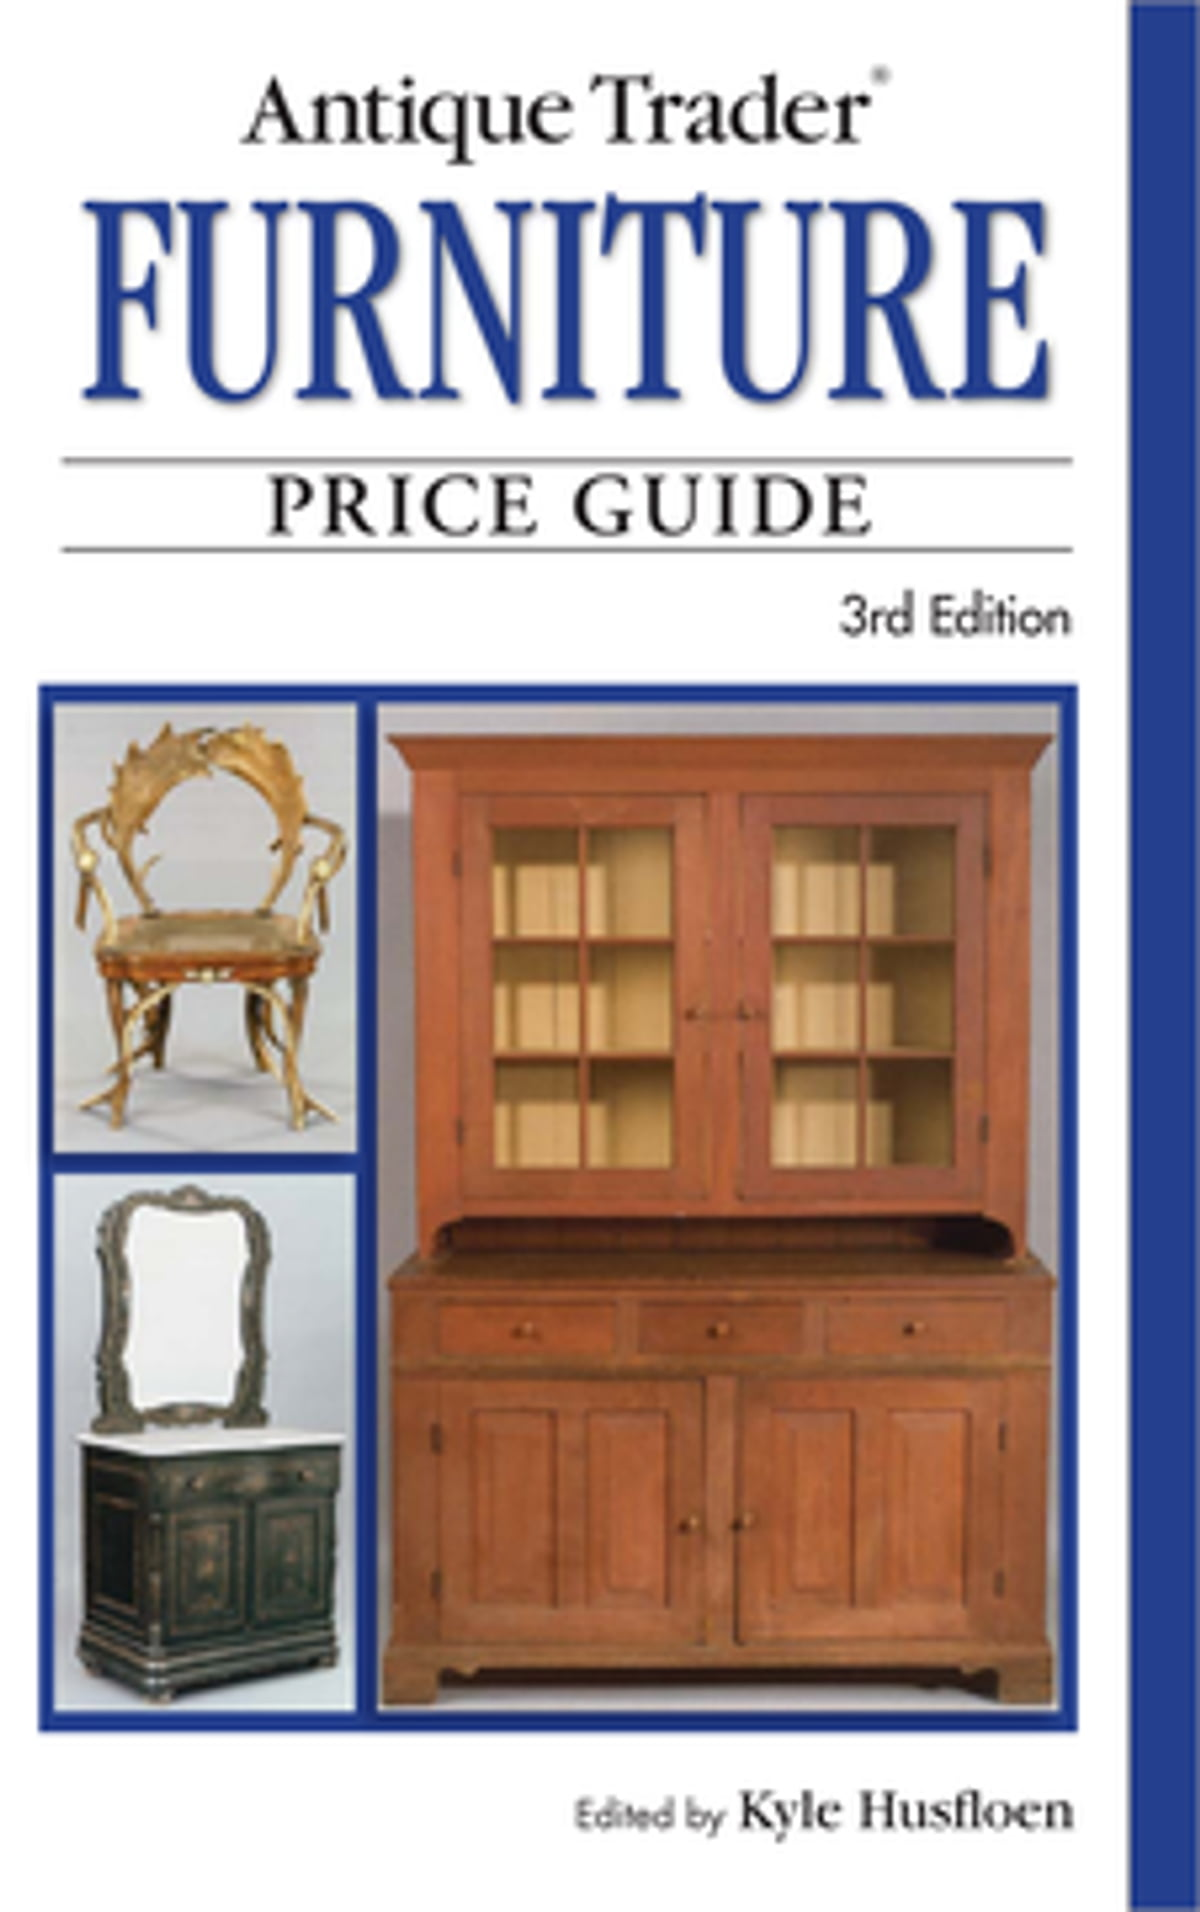 Antique Trader Furniture Price Guide eBook by Kyle Husfloen - 9781440219139    Rakuten Kobo - Antique Trader Furniture Price Guide EBook By Kyle Husfloen